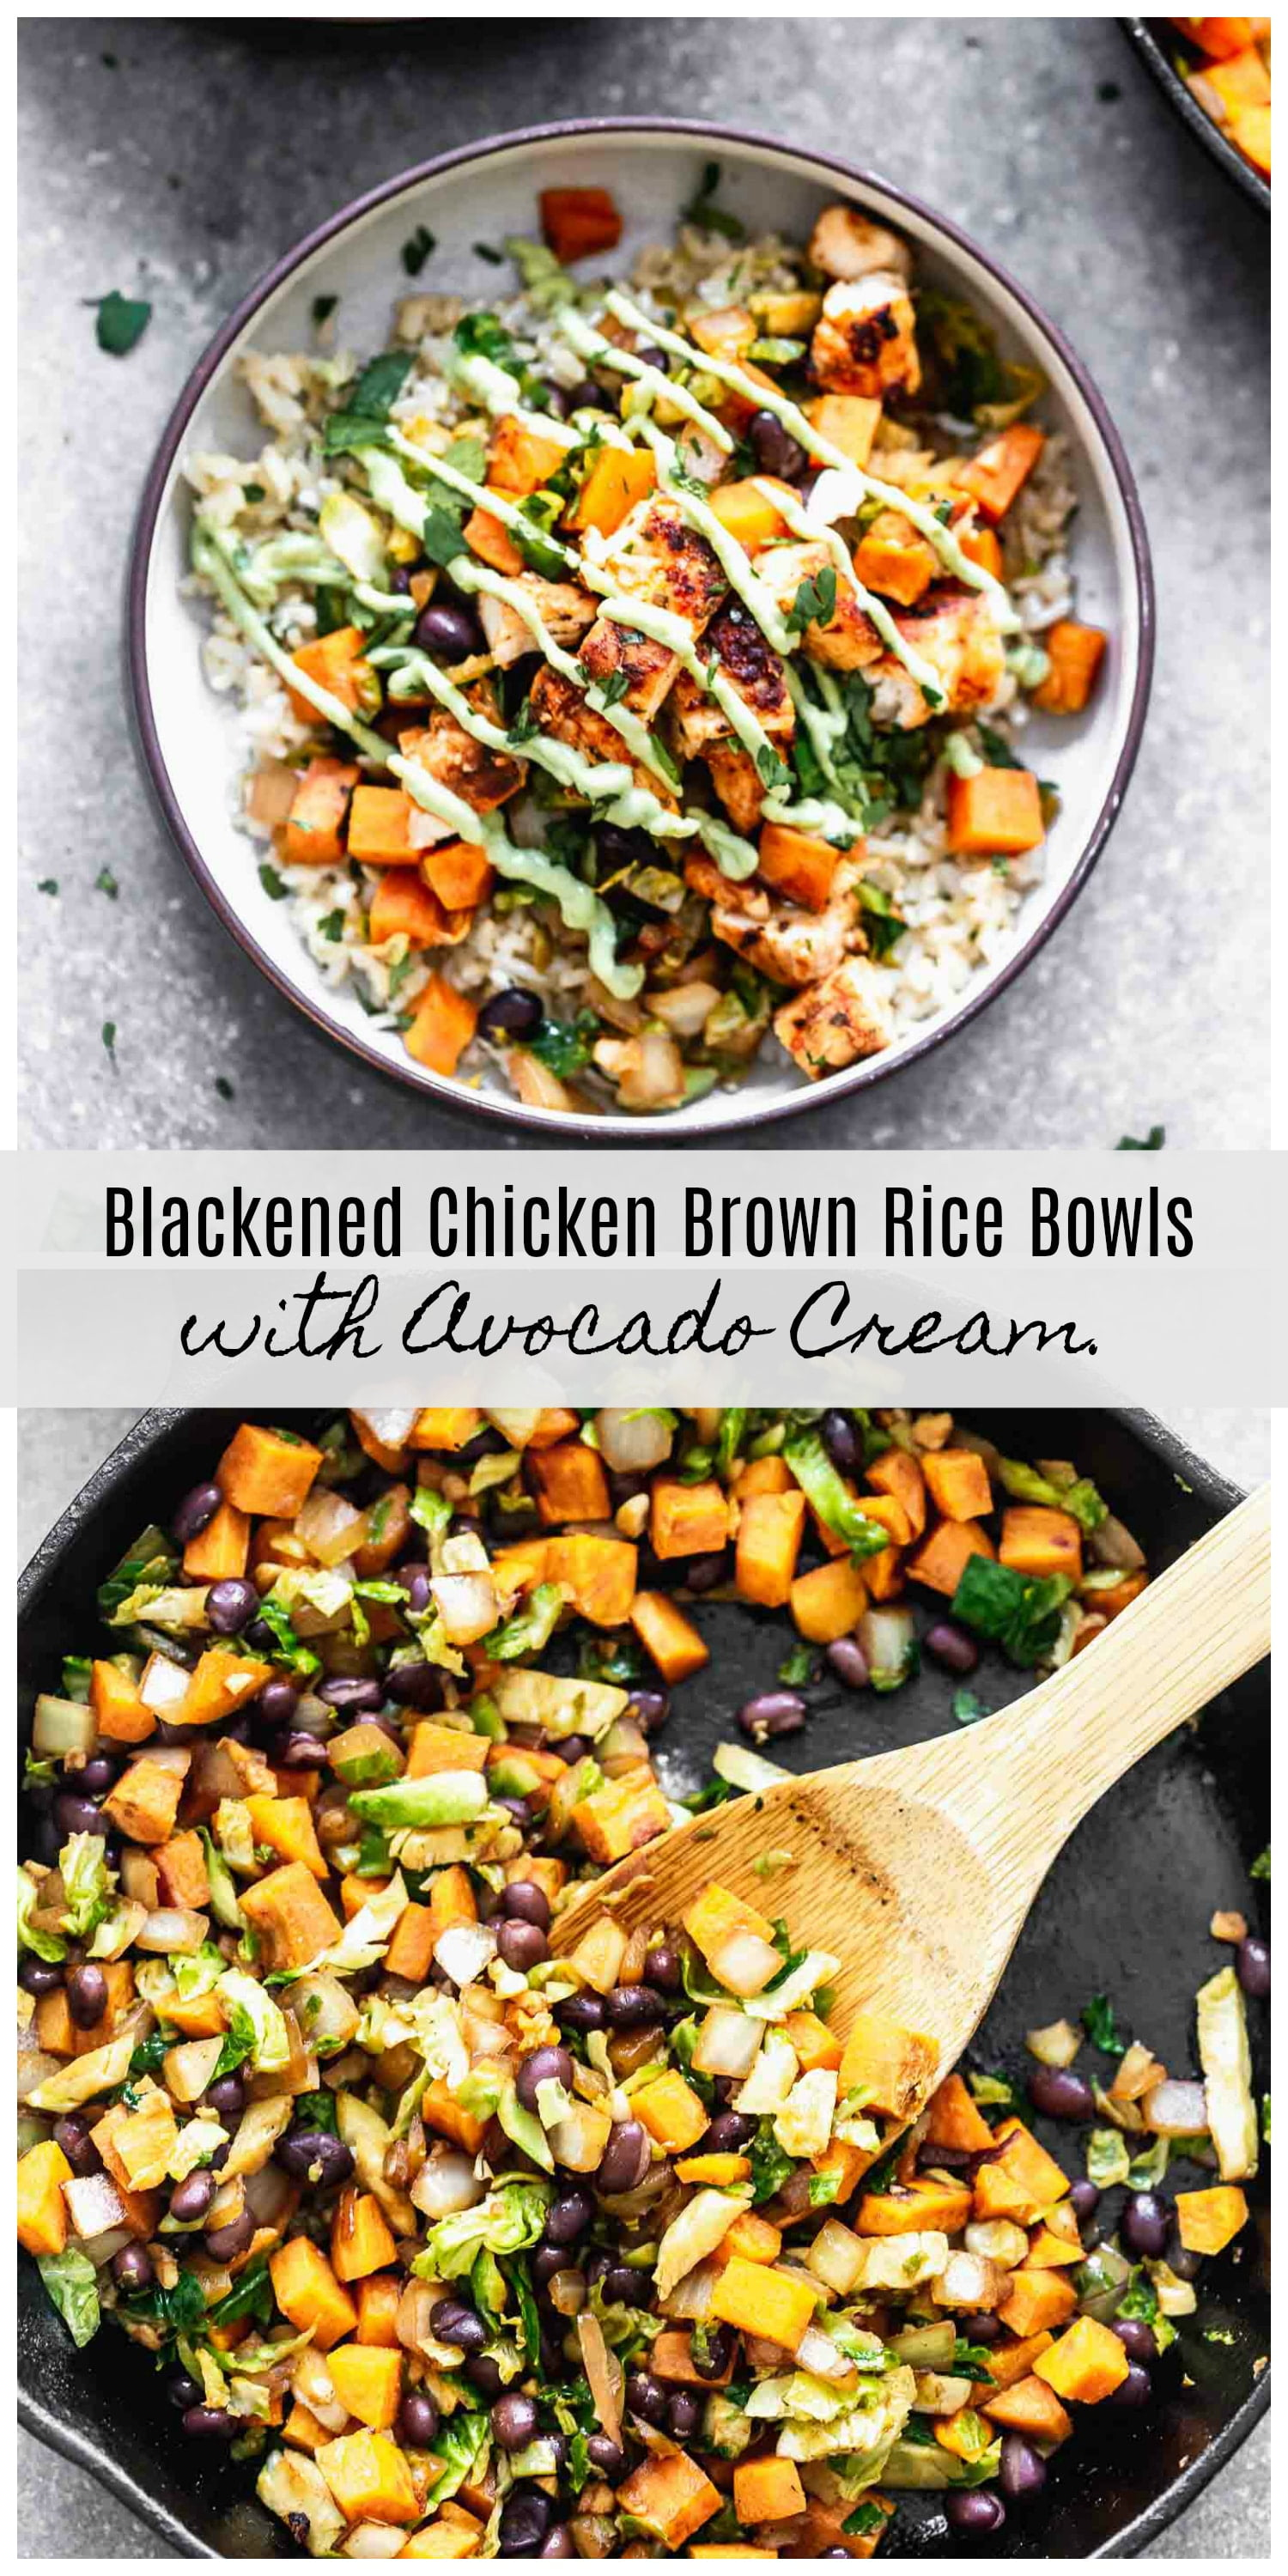 Blackened Chicken Brown Rice Bowls with Avocado Cream